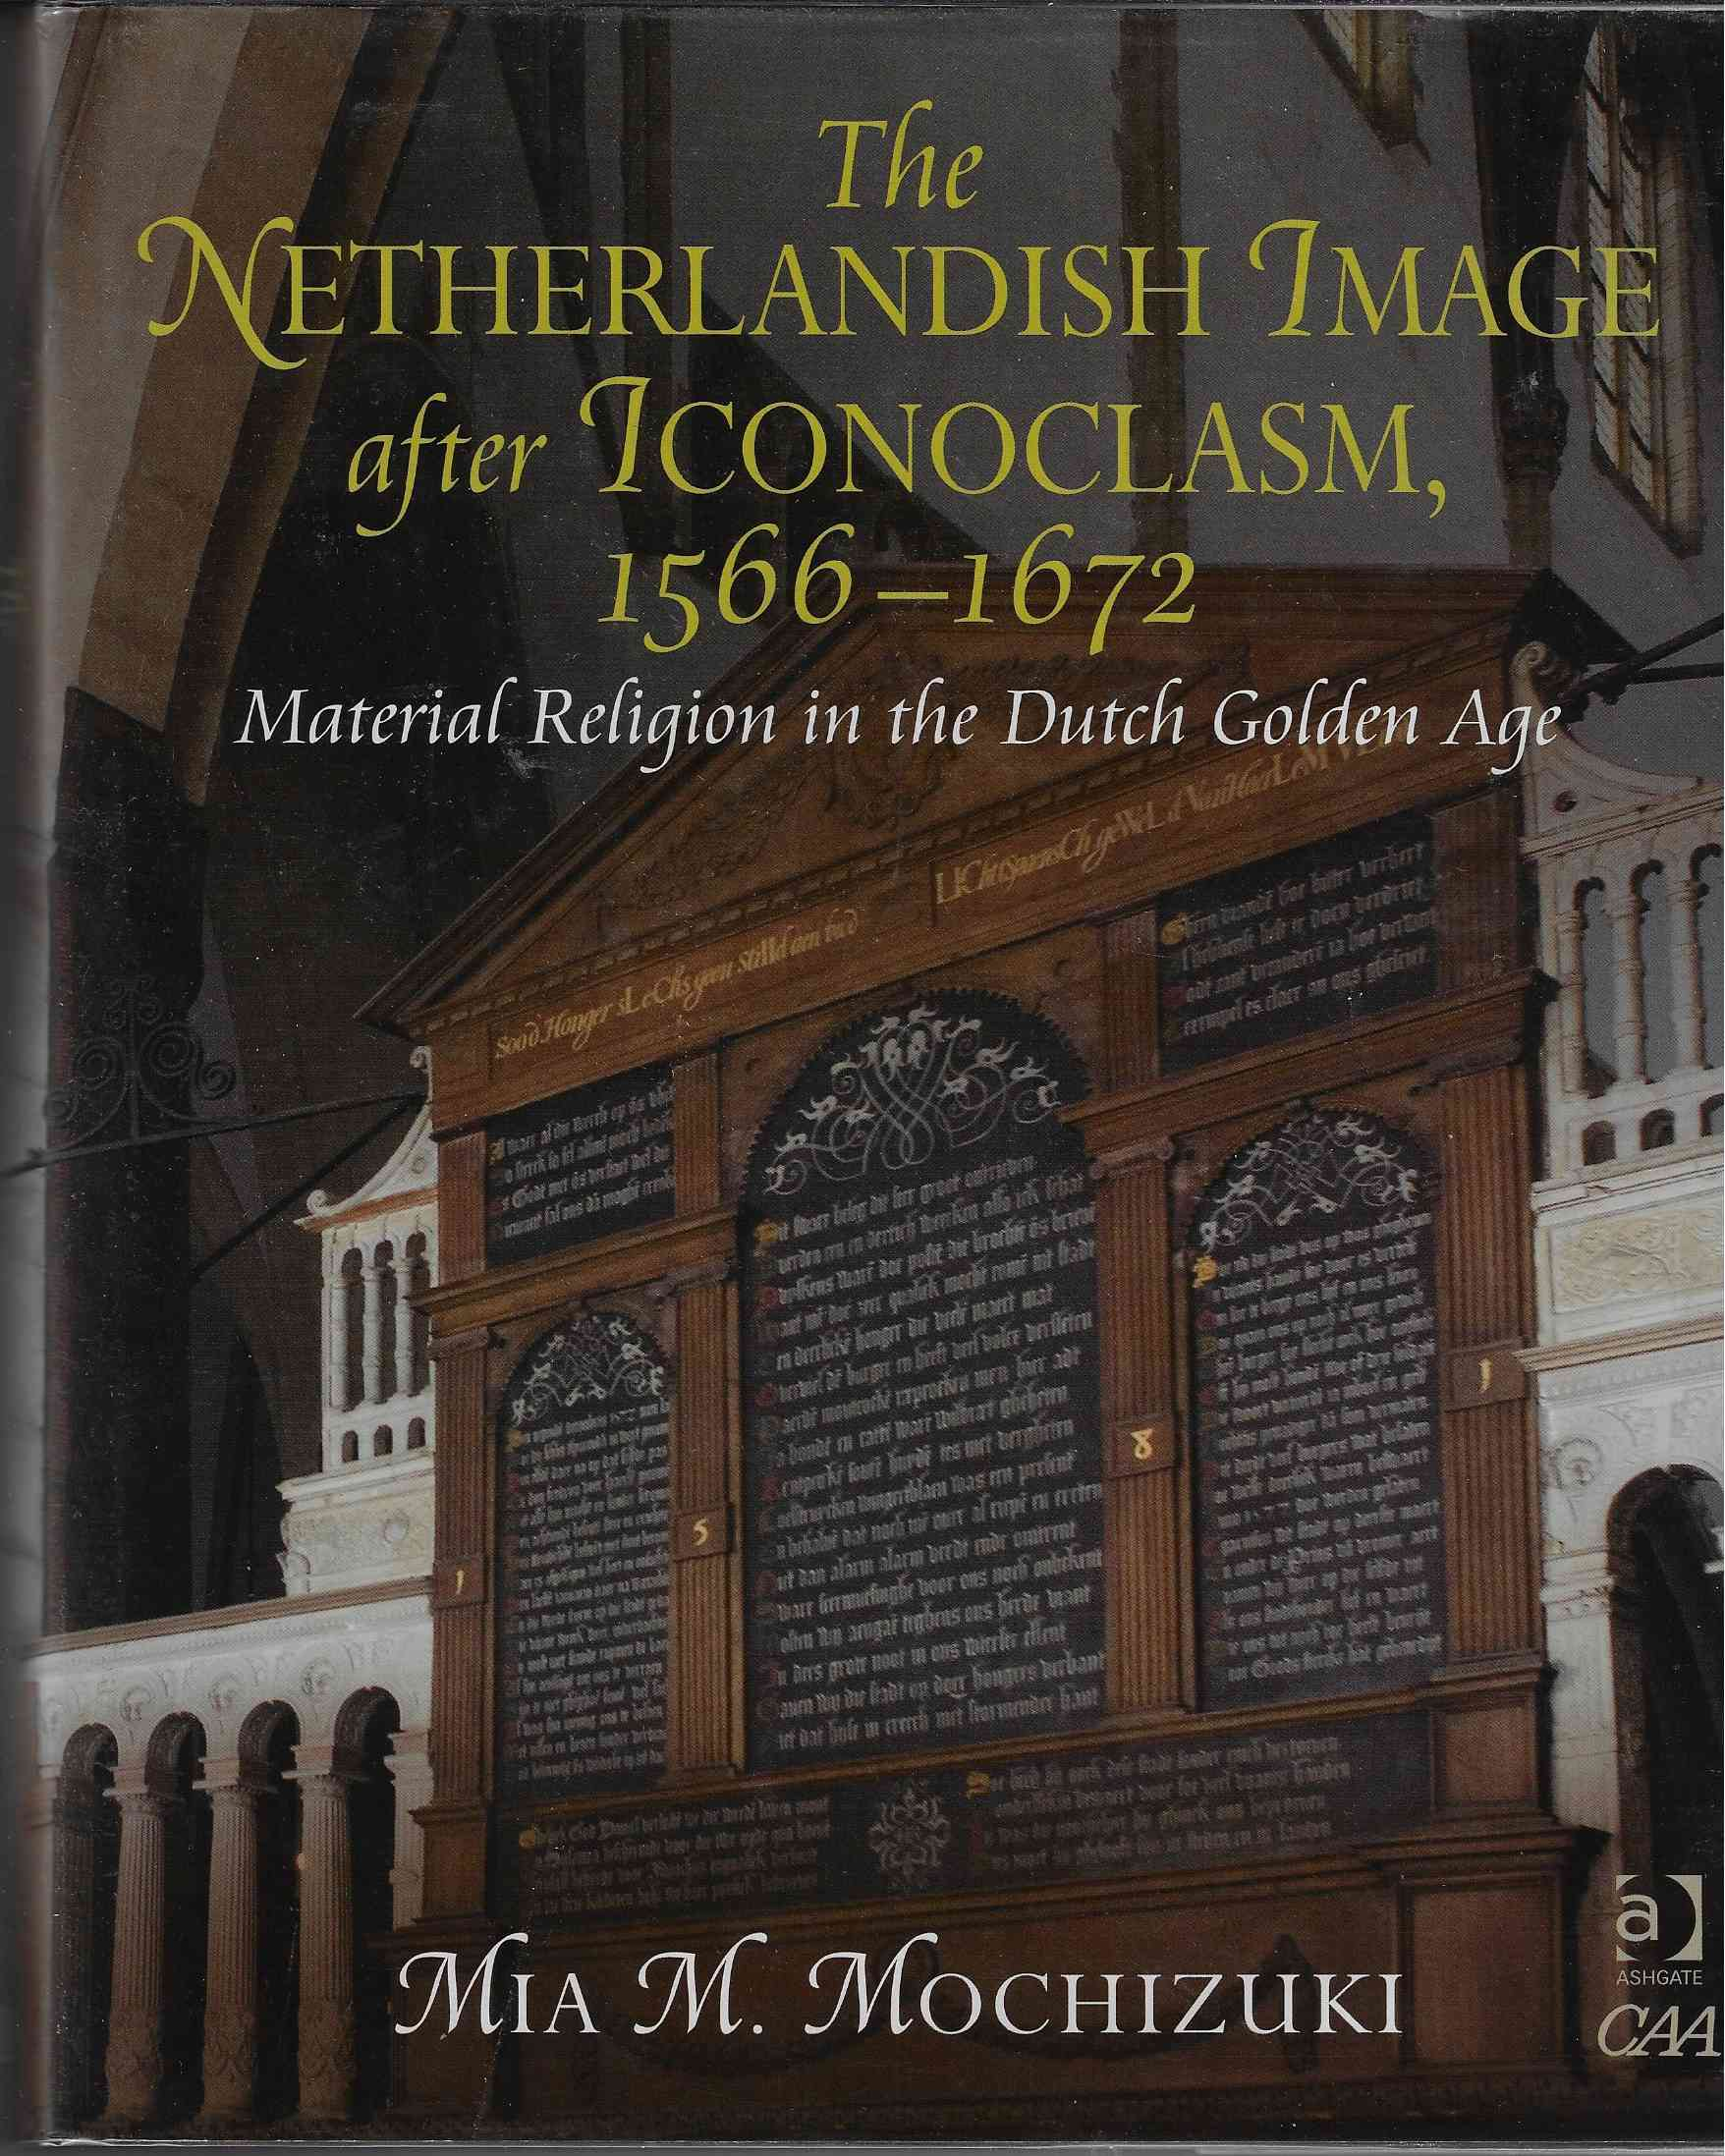 Image for The Netherlandish Image after Iconoclasm, 1566-1672  Material Religion in the Dutch Golden Age